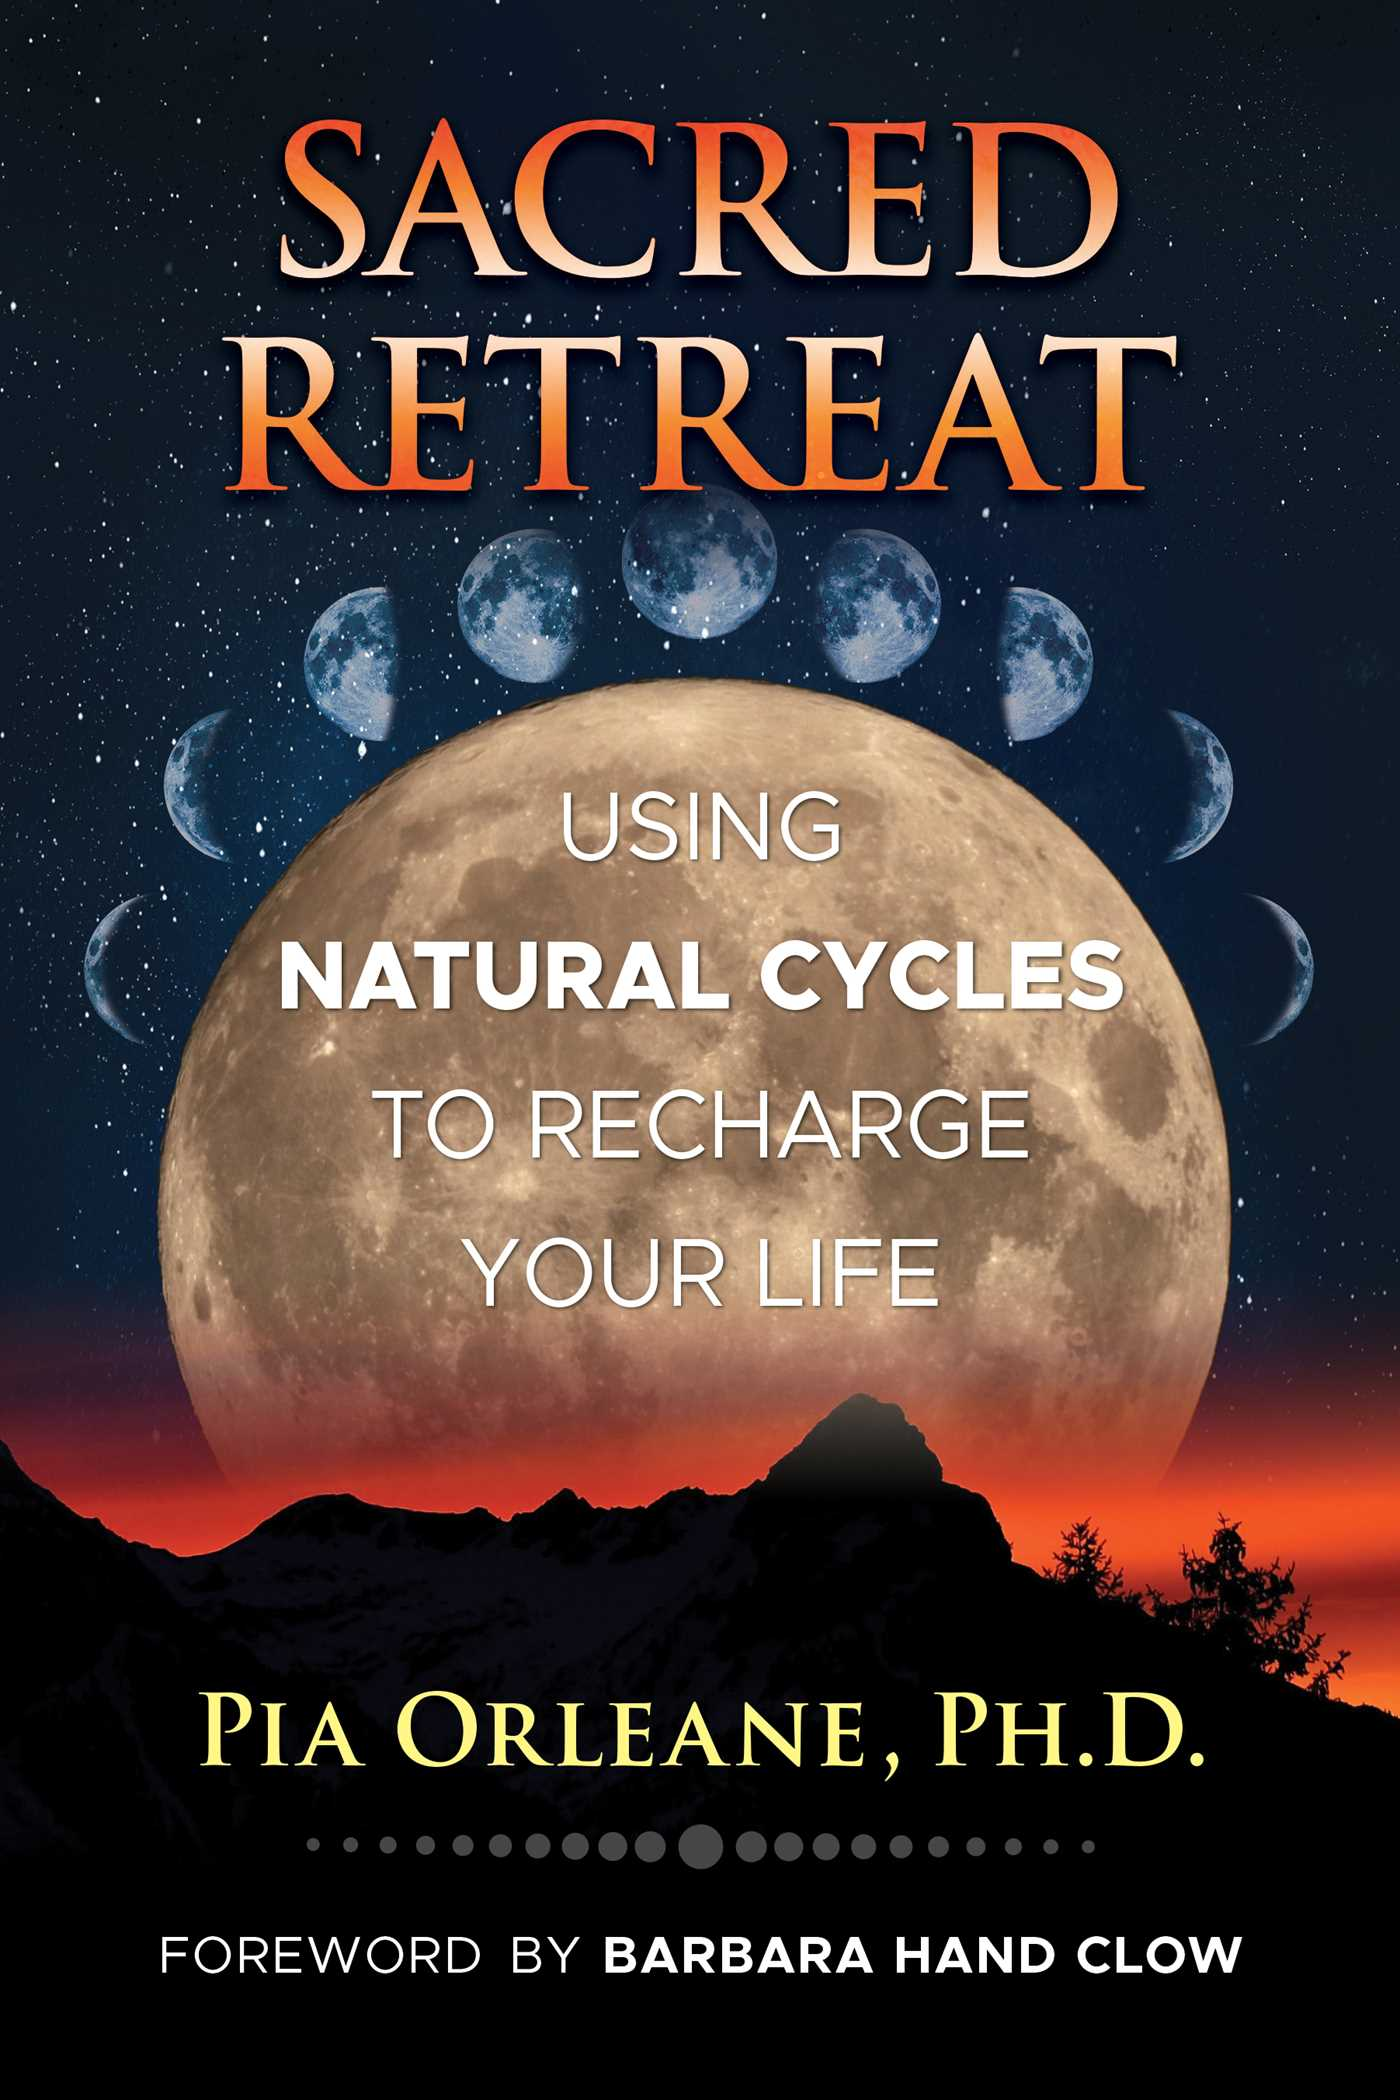 Sacred retreat 9781591437918 hr